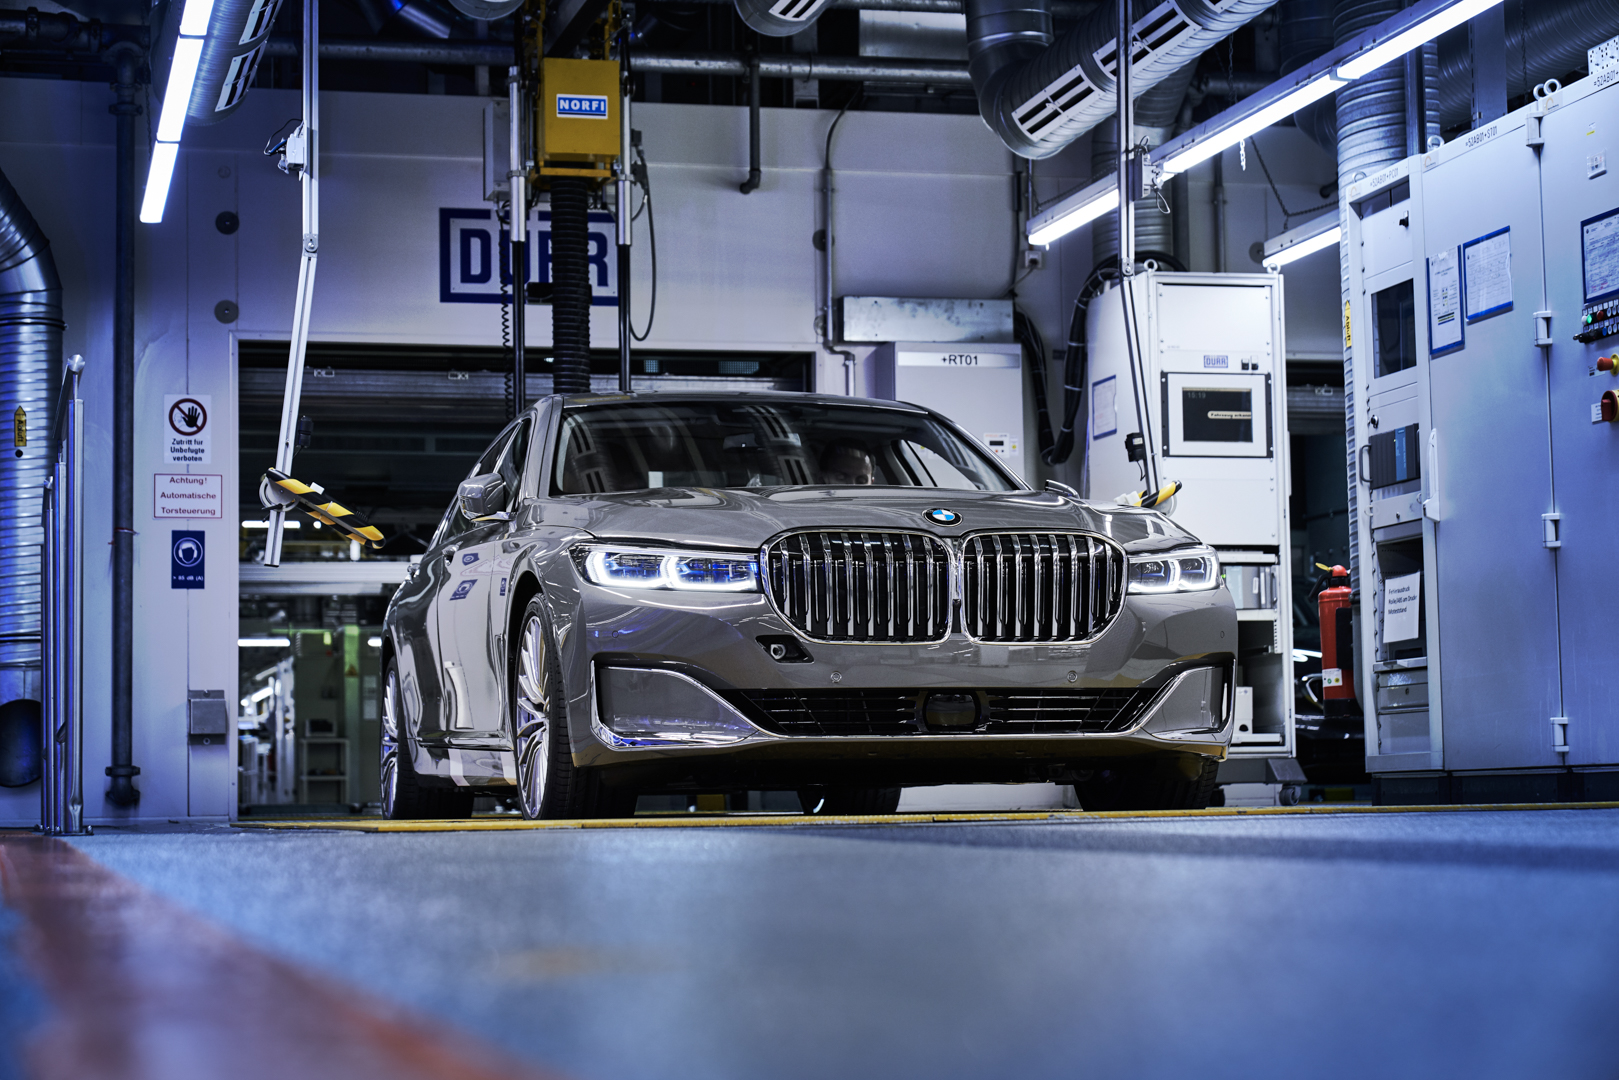 BMW 7 Series LCI Dingolfing 11 of 13 1